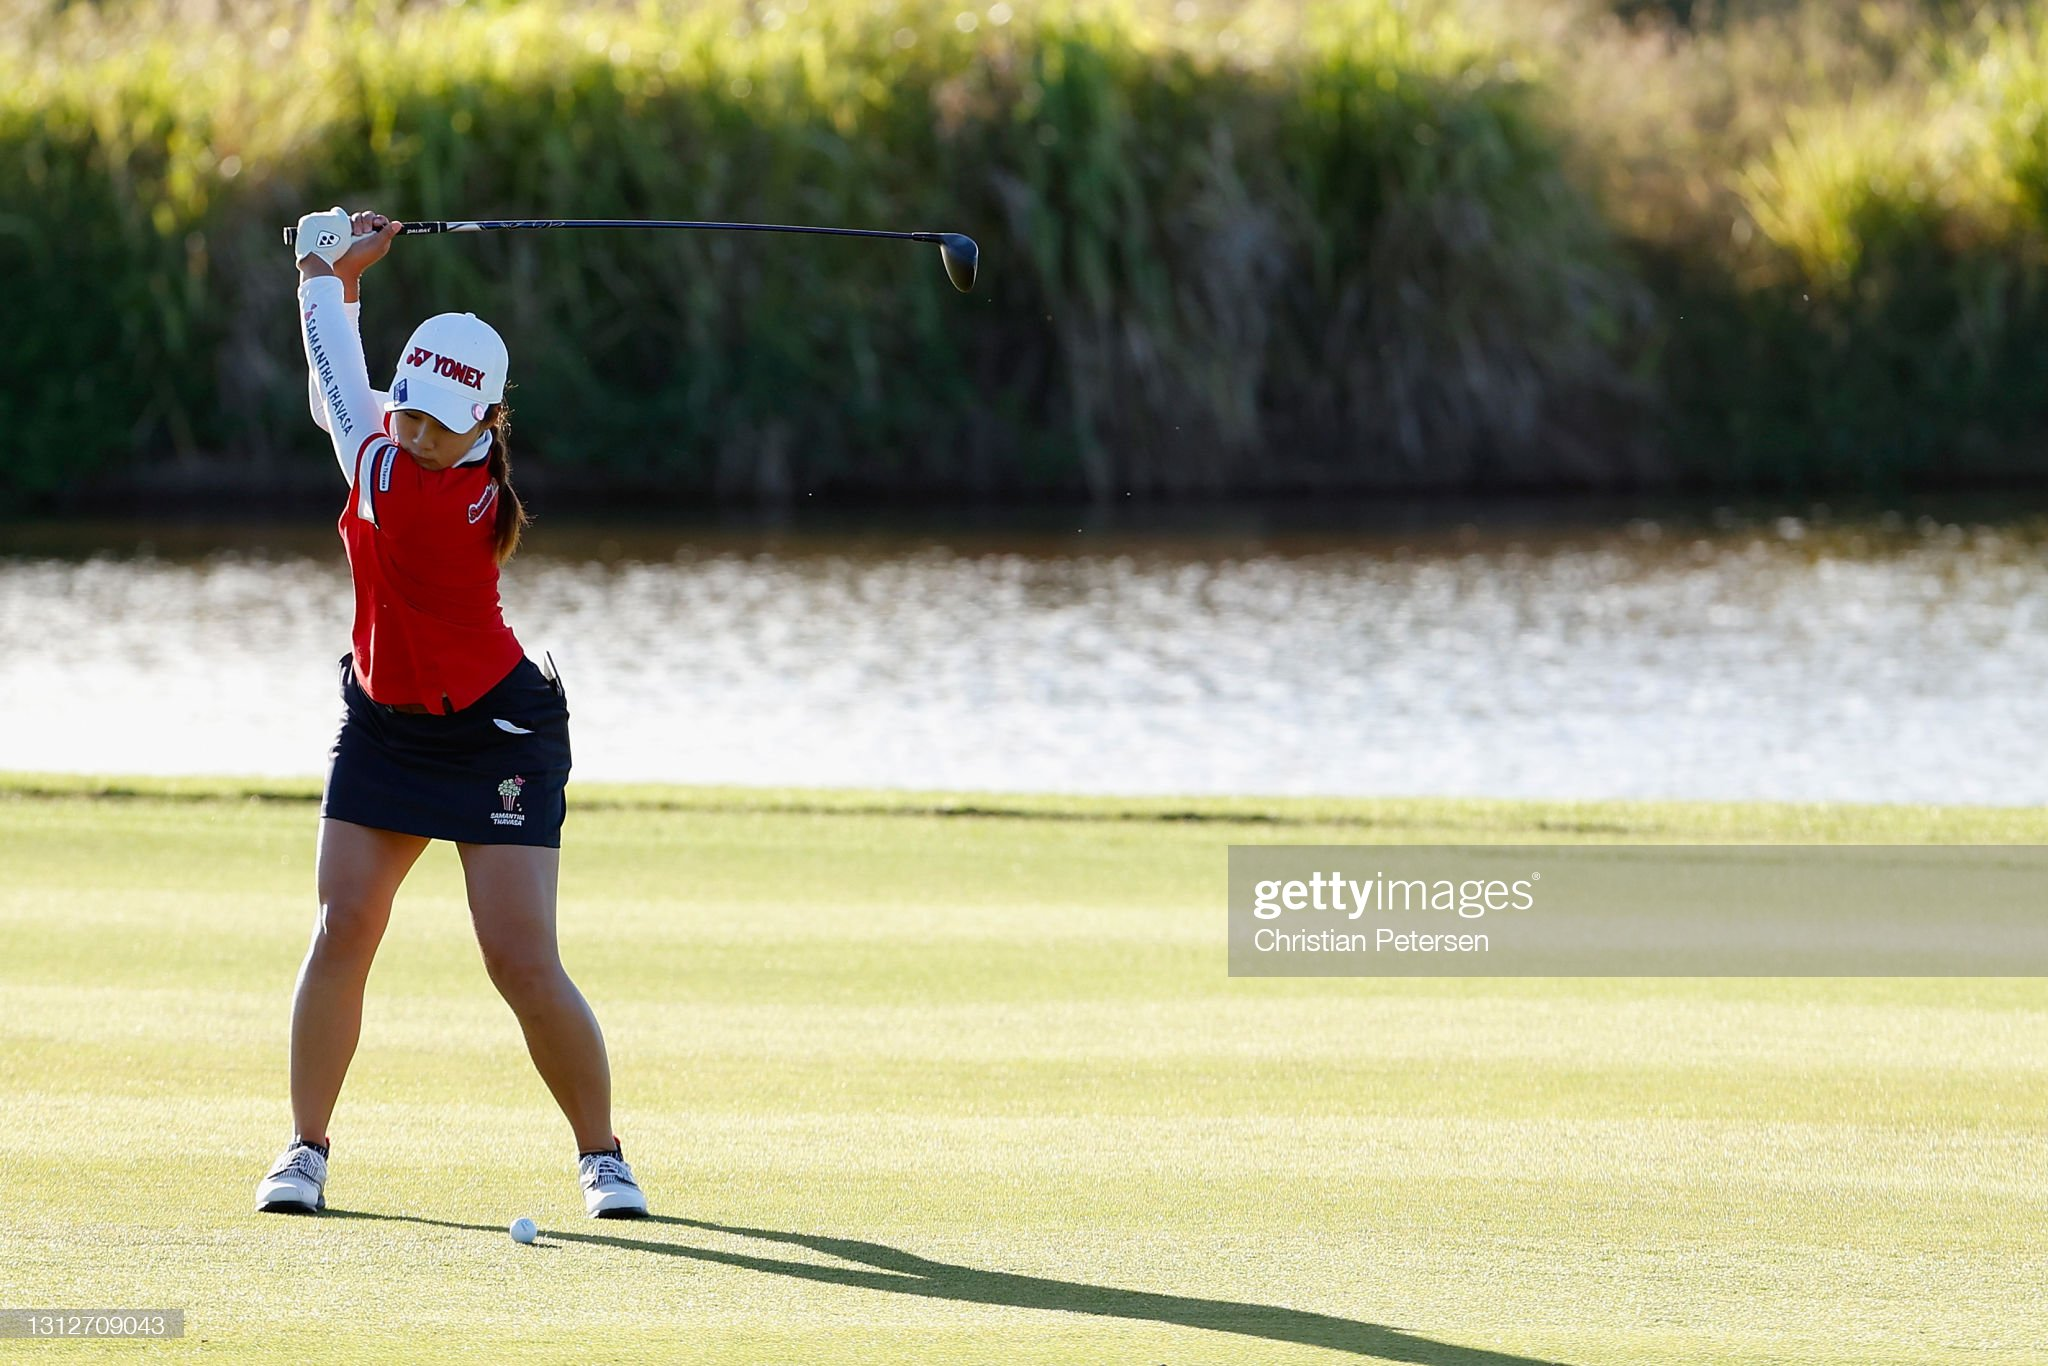 https://media.gettyimages.com/photos/suzuka-yamaguchi-of-japan-plays-her-second-shot-on-the-first-hole-picture-id1312709043?s=2048x2048